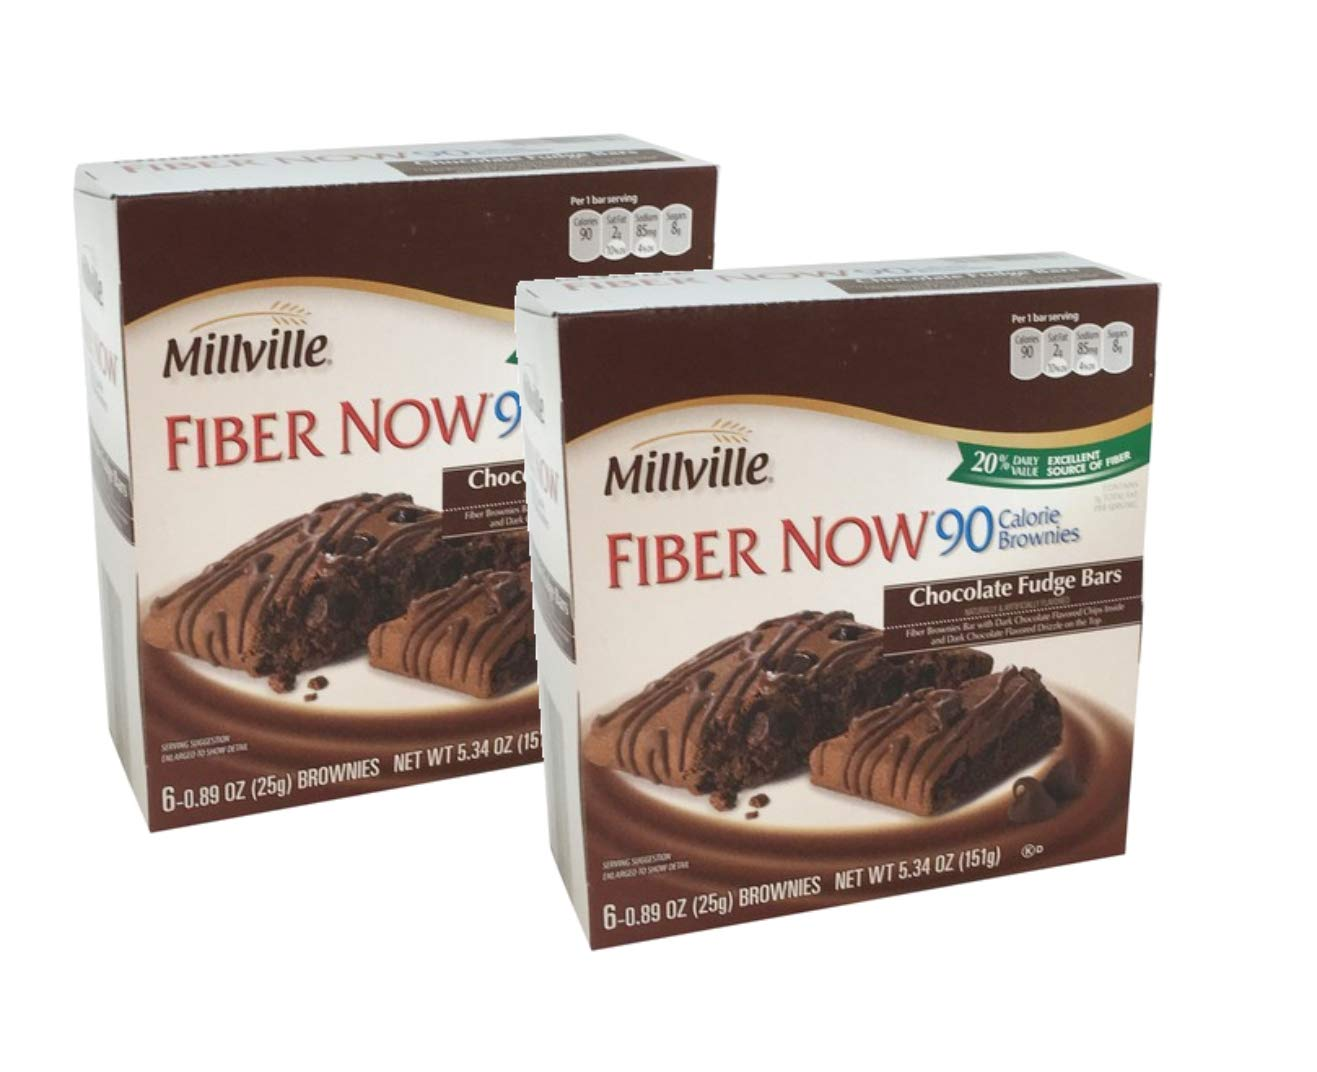 Millville Fiber Now 90 Calorie Fiber Brownies Fudge Bar with Dark Chocolate Chips Inside and Dark Chocolate Drizzle - 12 ct.